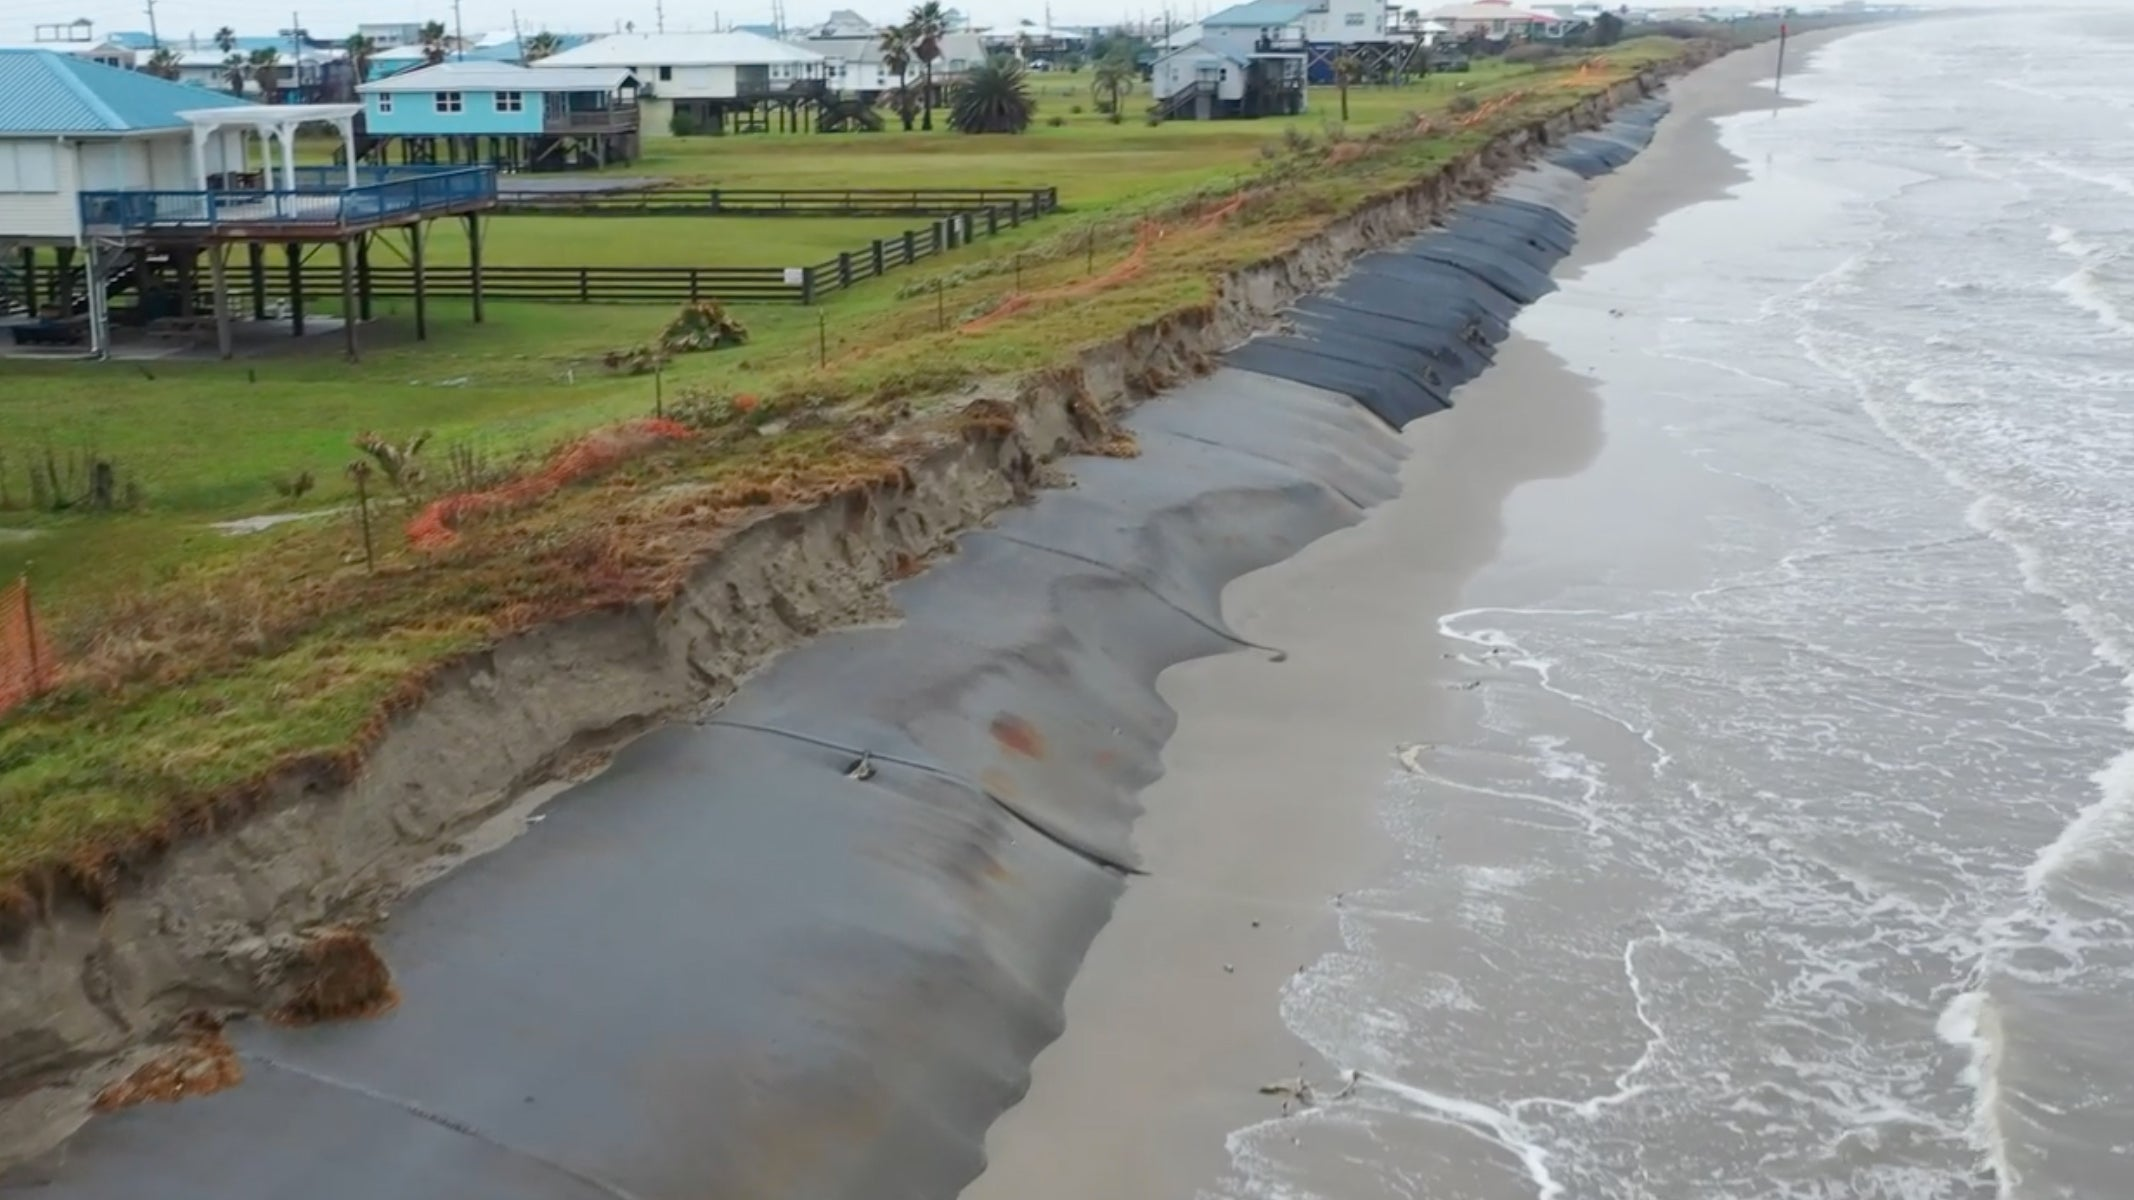 Grand Isle, Louisiana, Keeps Wary Eye on Potential Tropical Storm | The Weather Channel - Articles from The Weather Channel | weather.com